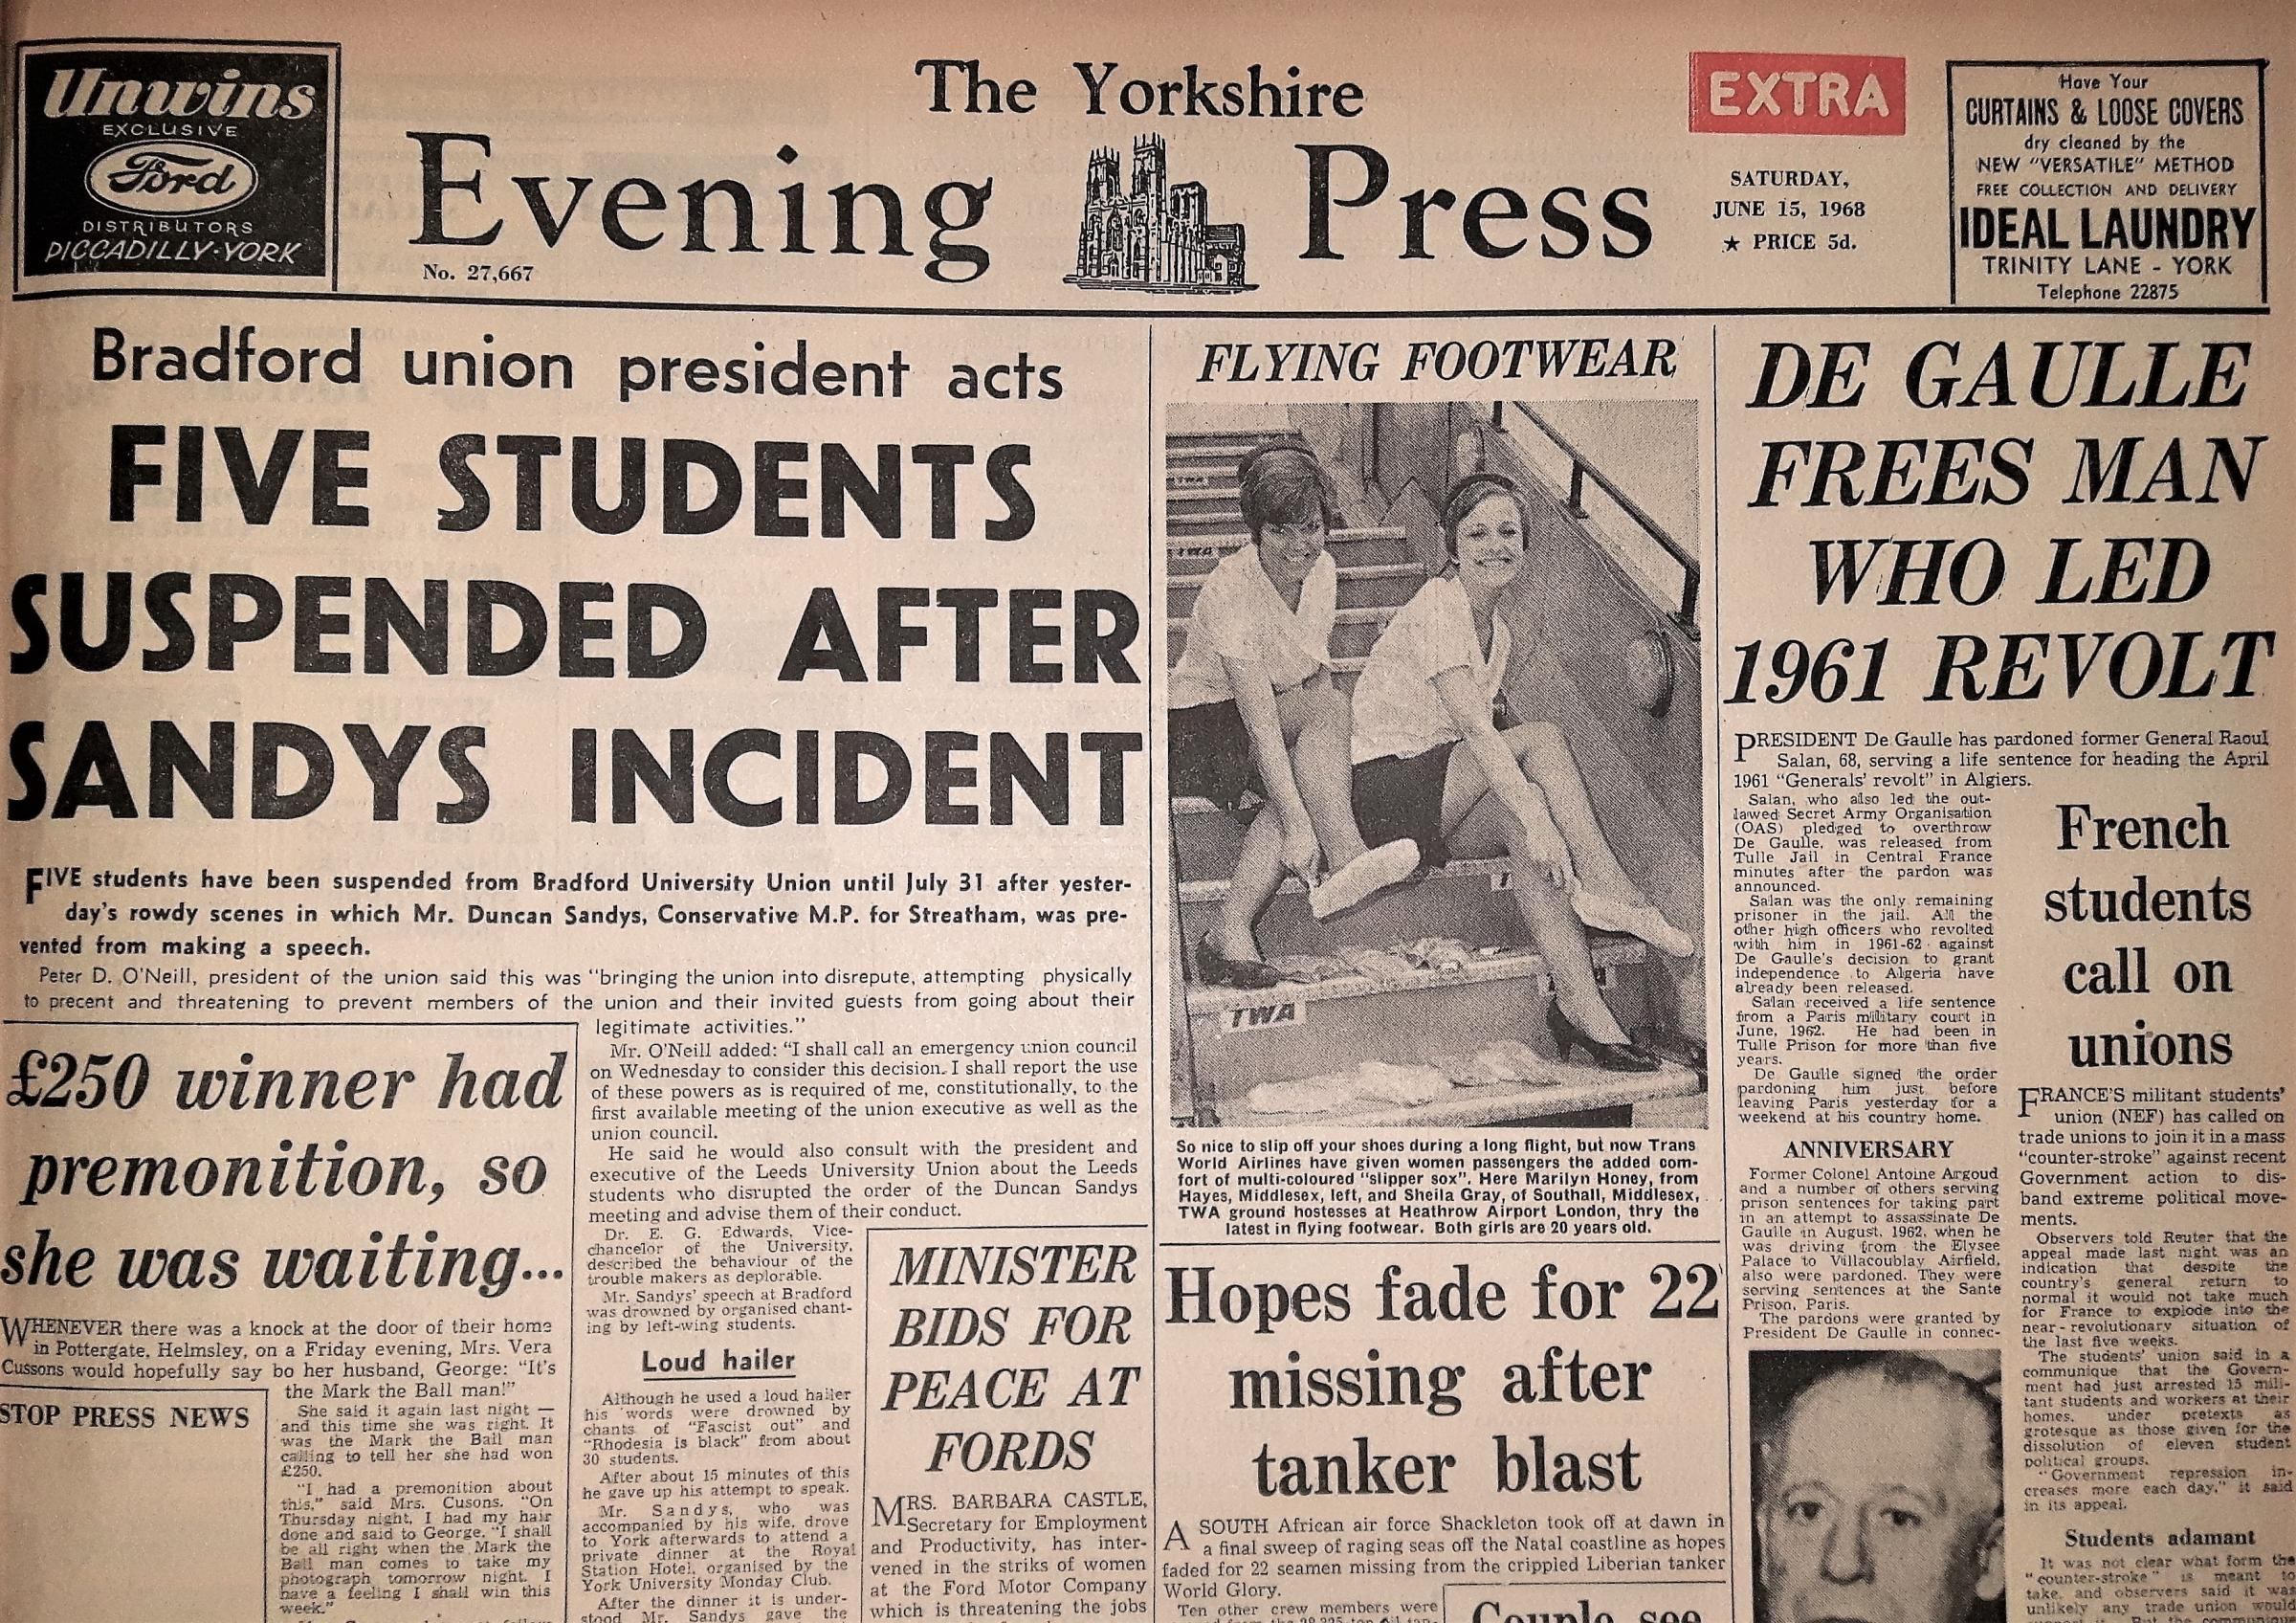 The Yorkshire Evening Press front page from June 15, 1968